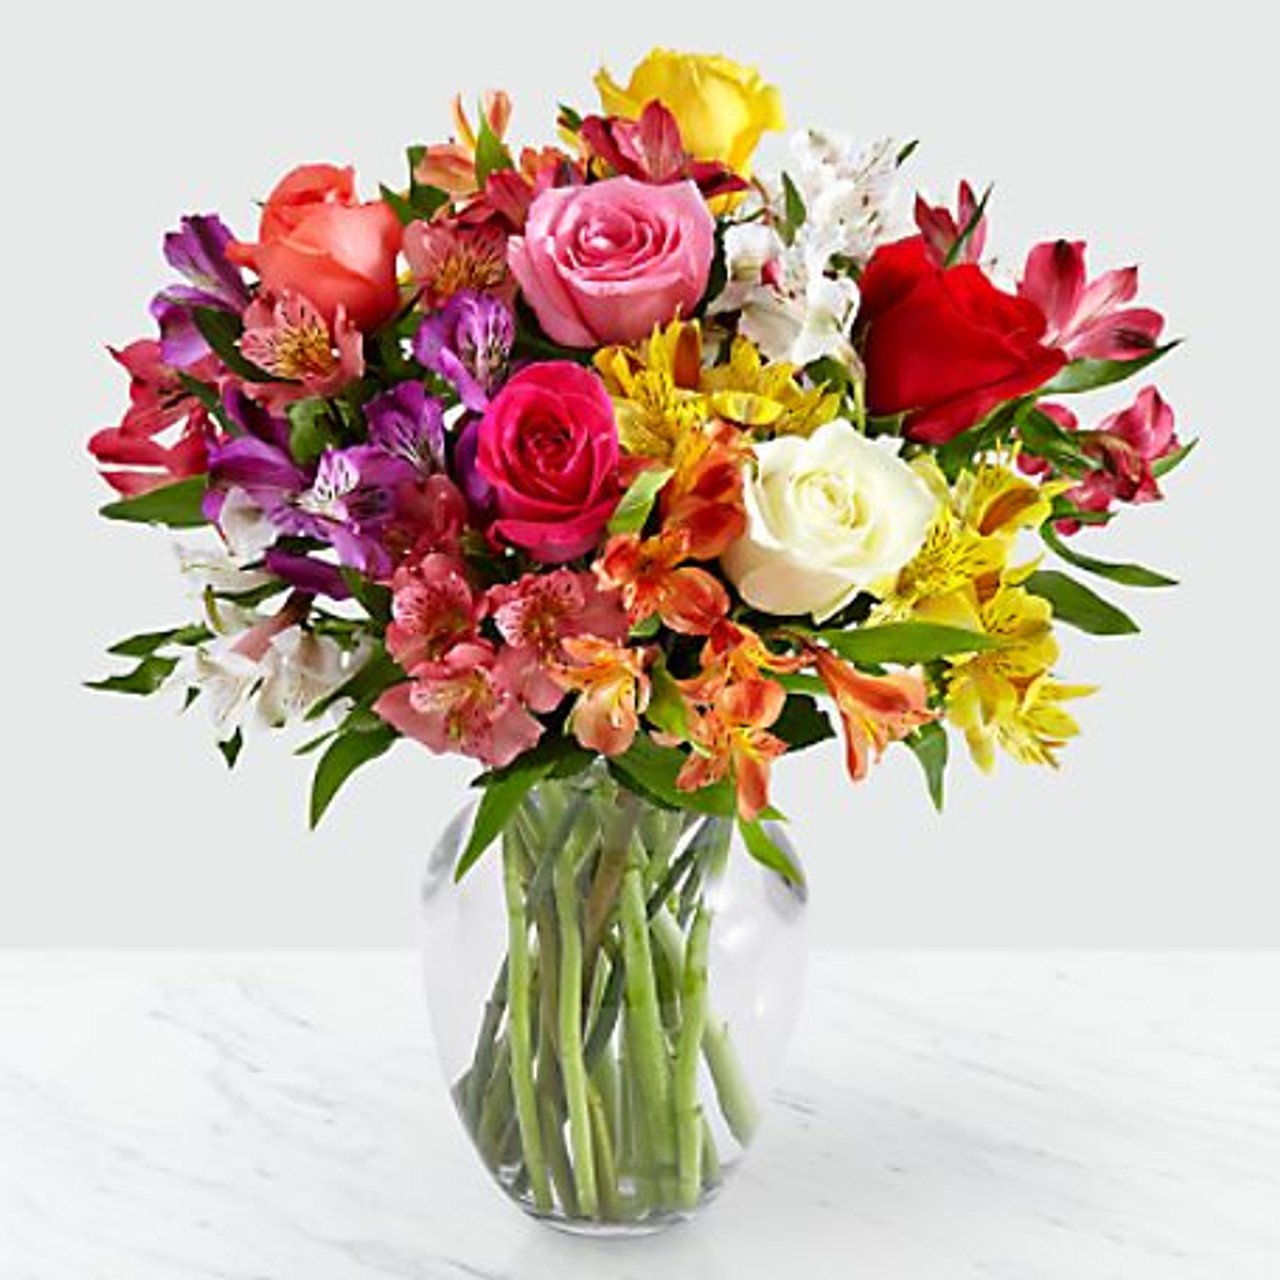 Beautiful Flowers in a Vase